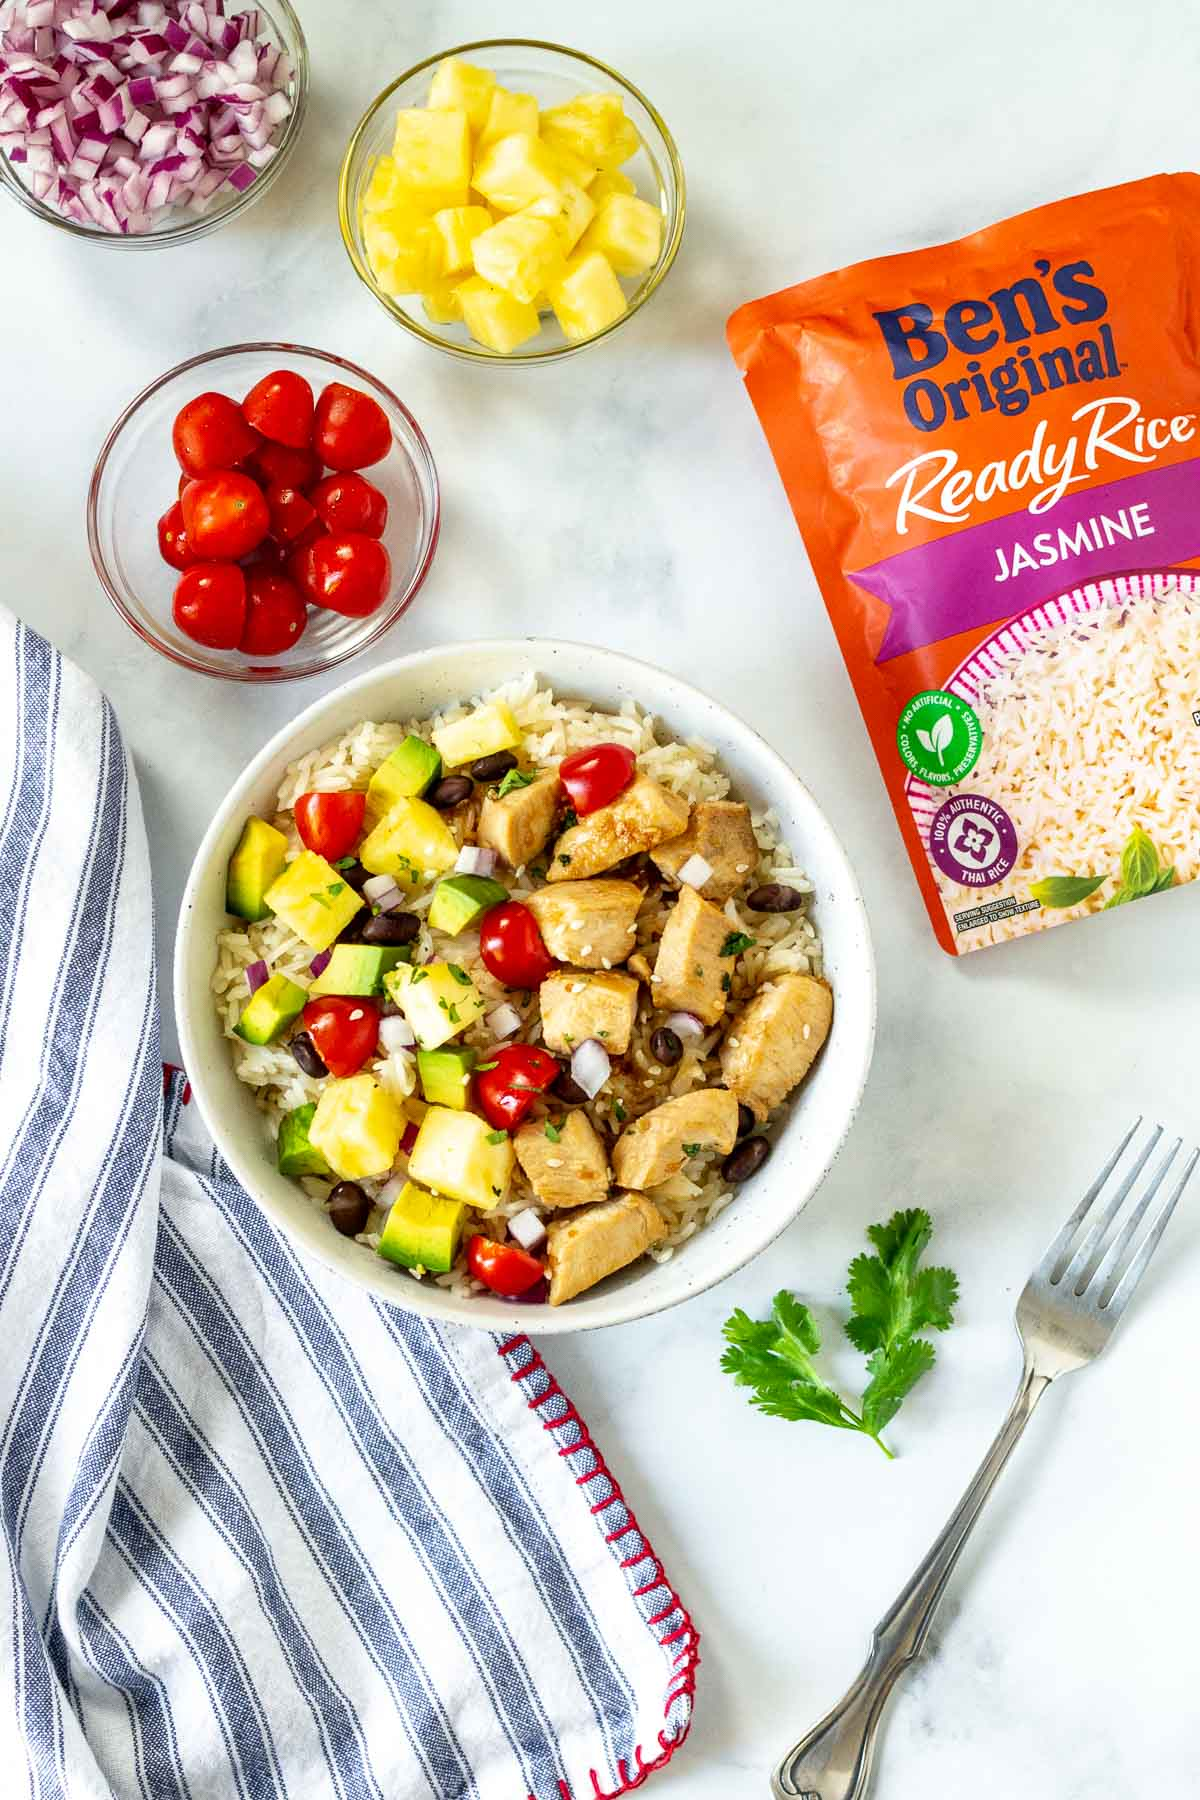 Assembled Hawaiian chicken bowl with pineapple, tomatoes and red onion in small bowls and a package of Ben's Original Jasmine rice